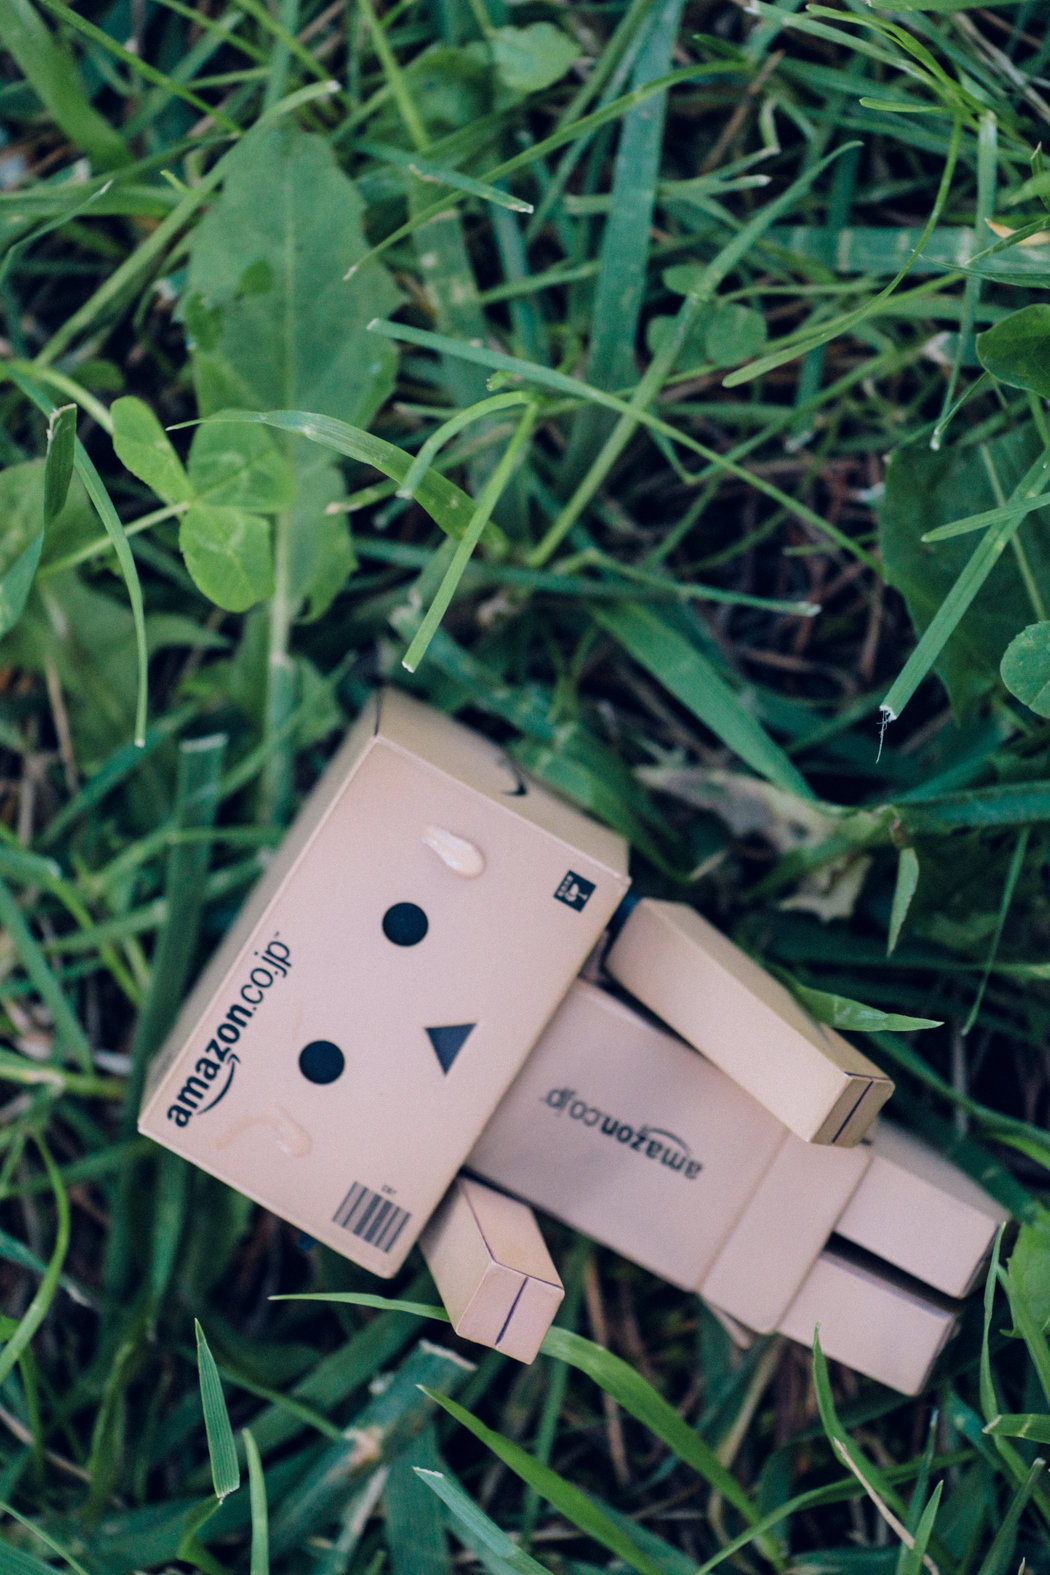 Pfff, what a hot day today! Danbo danboard